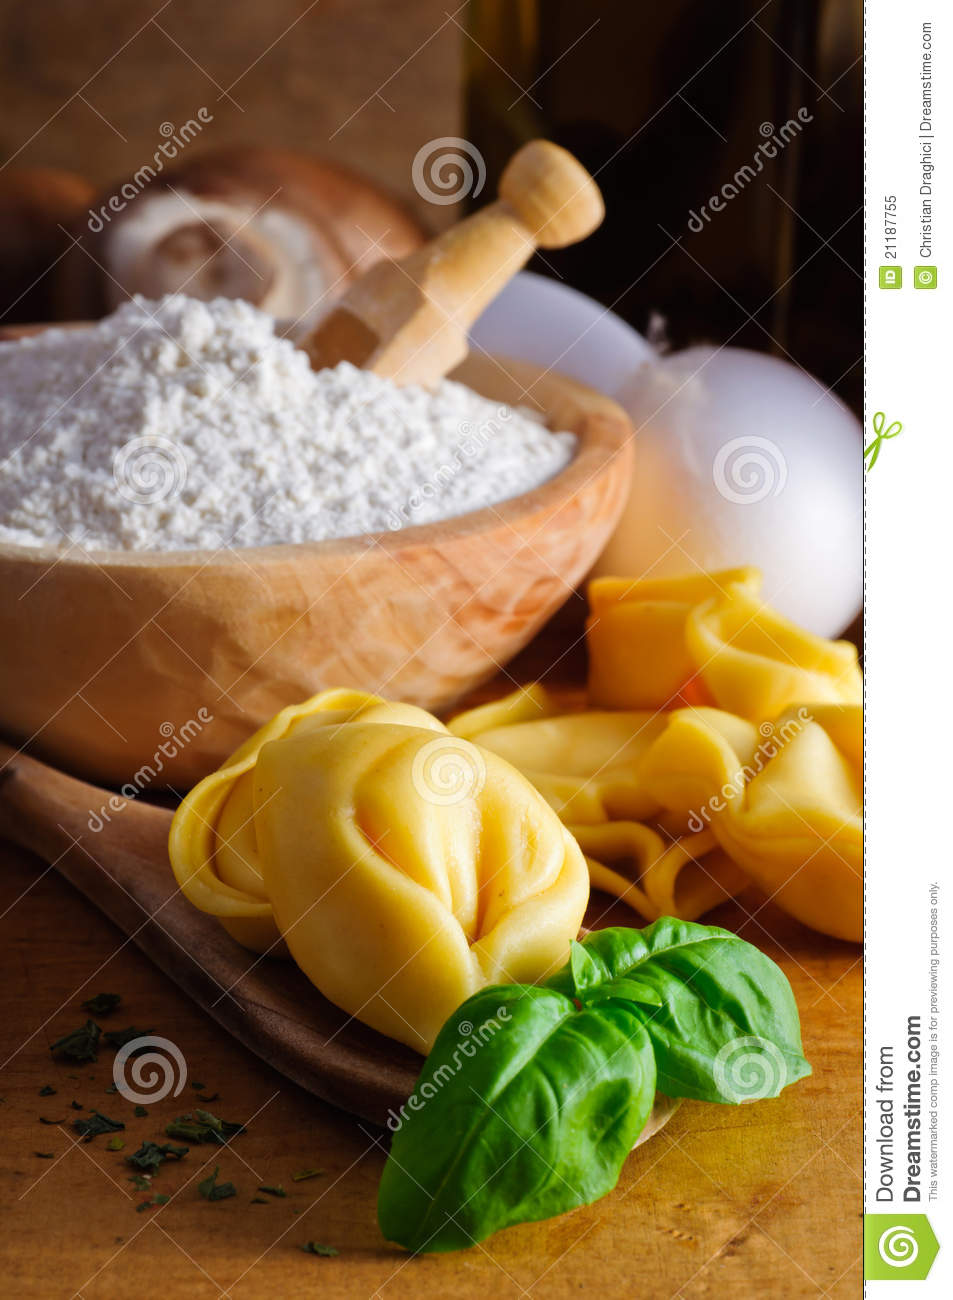 Tortellini ingredients